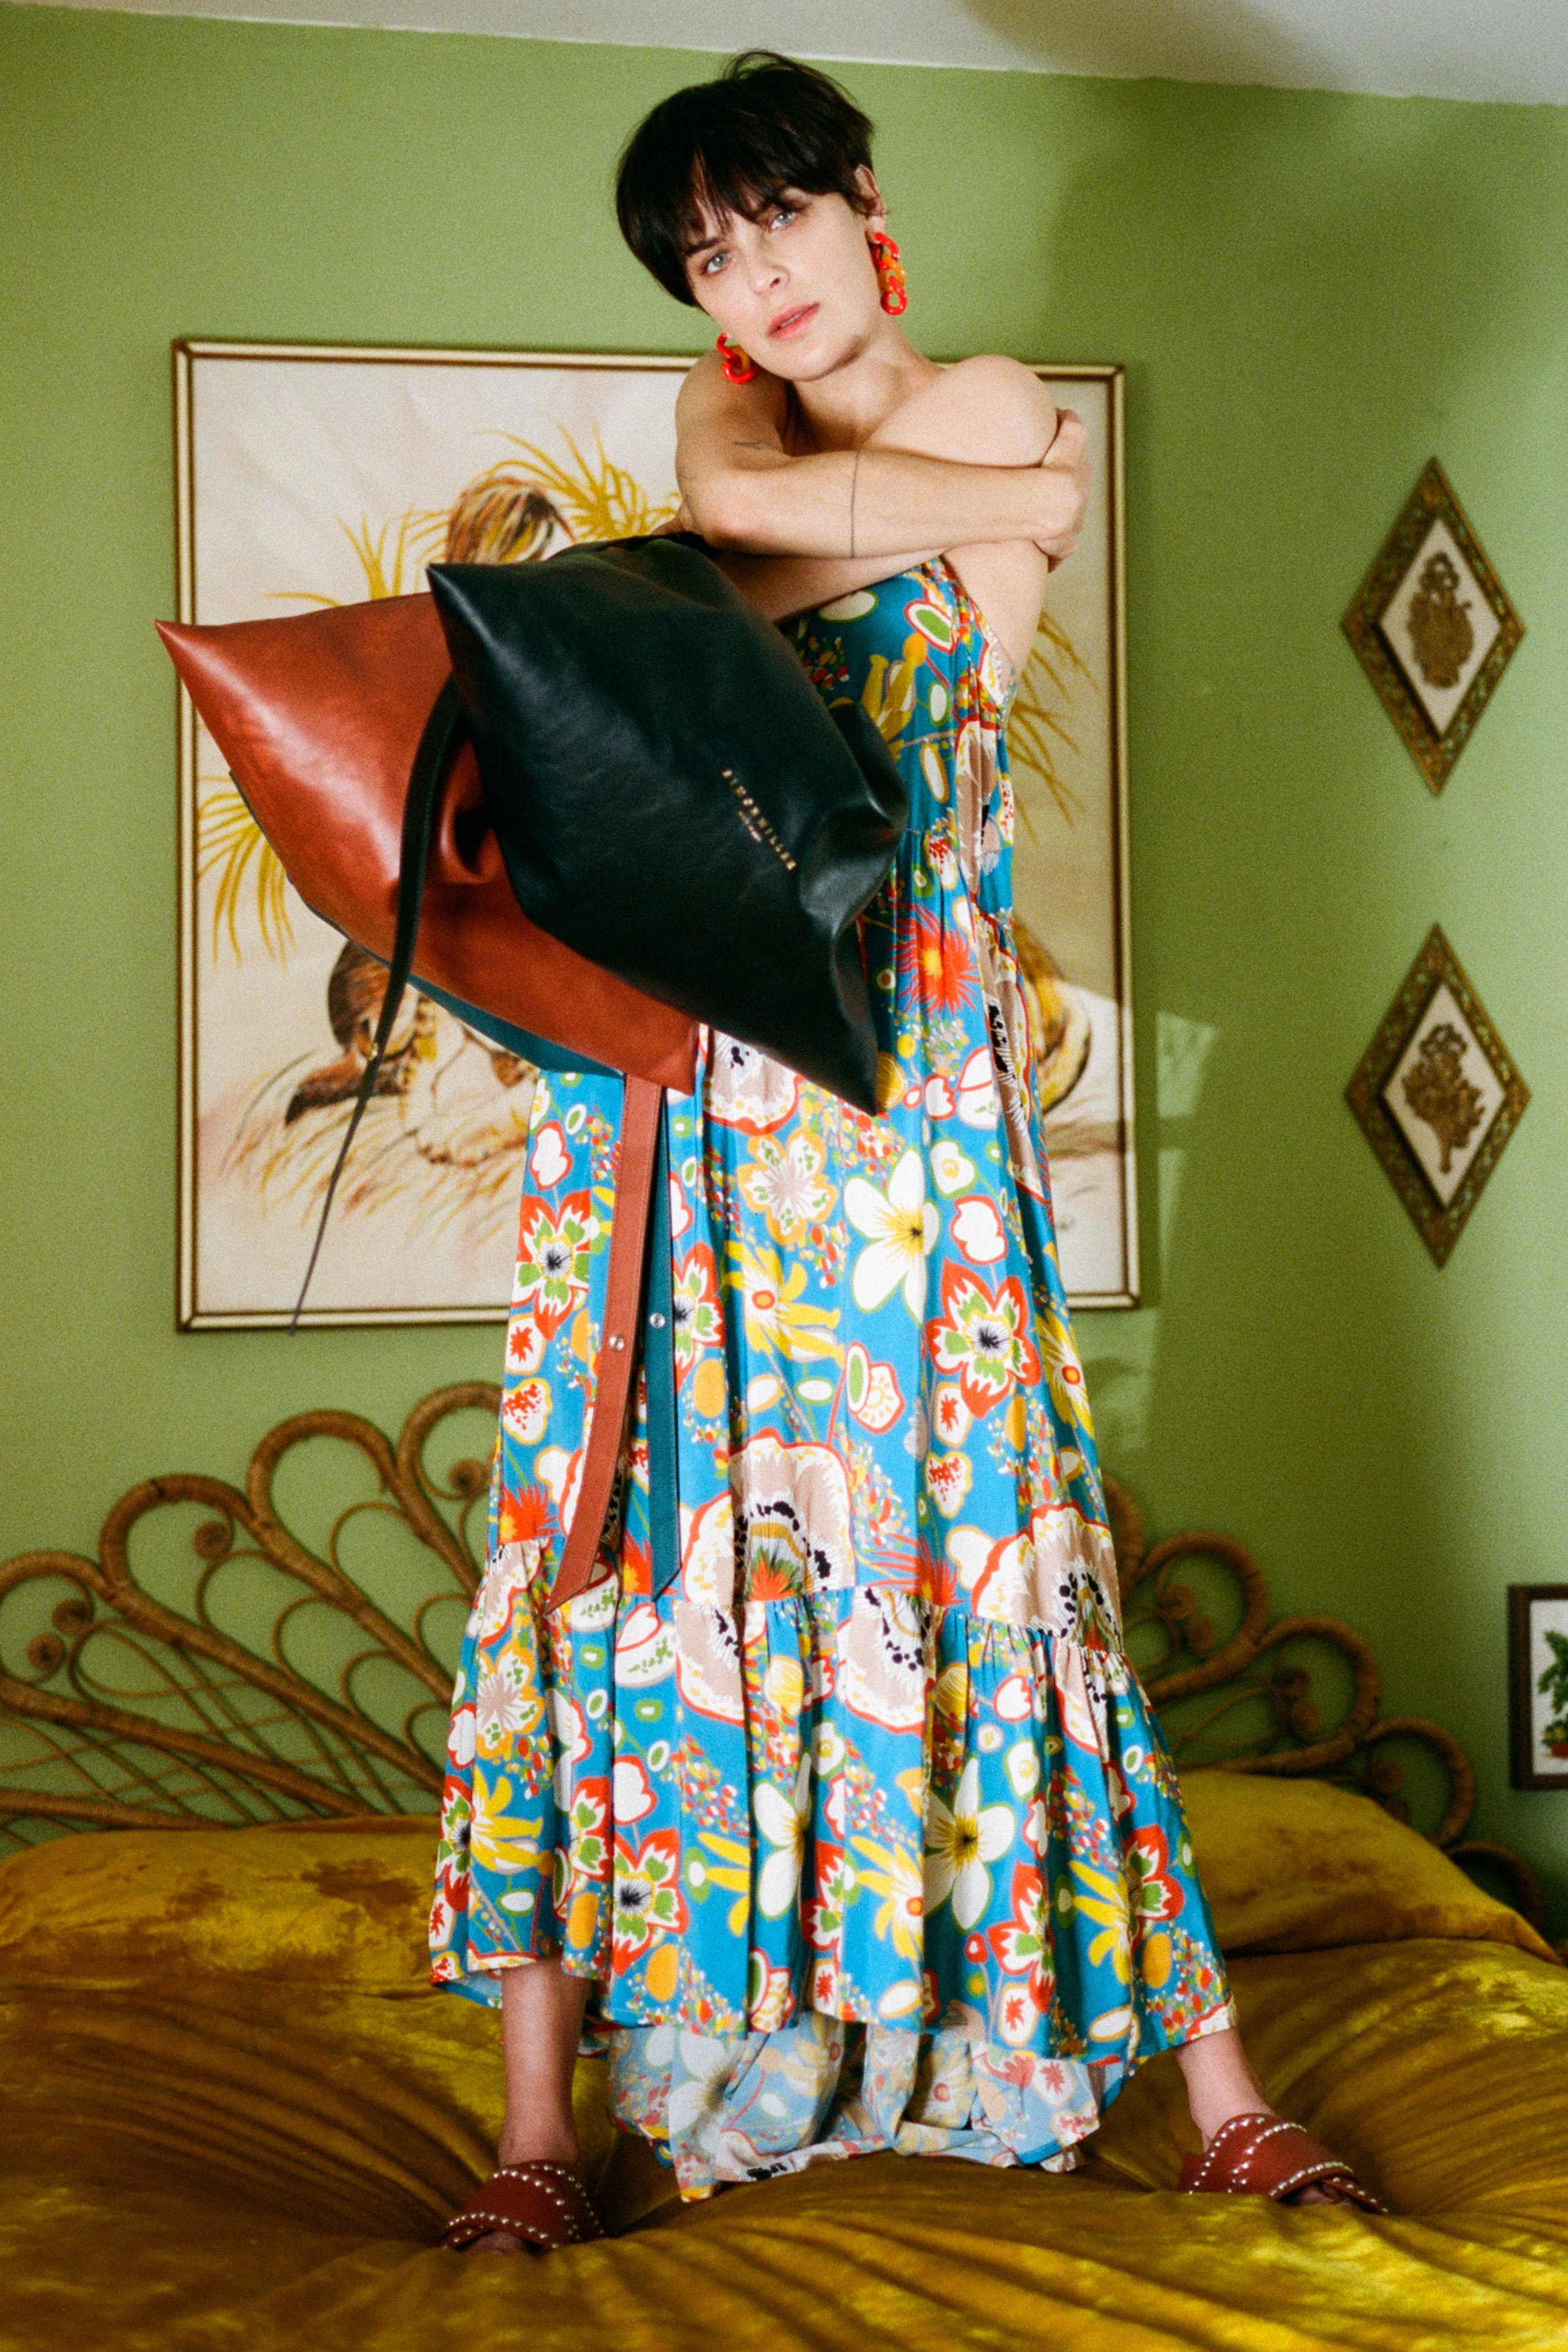 Pumpa Layered Tank Dress in Blue Floral Print by Simon Miller - 4